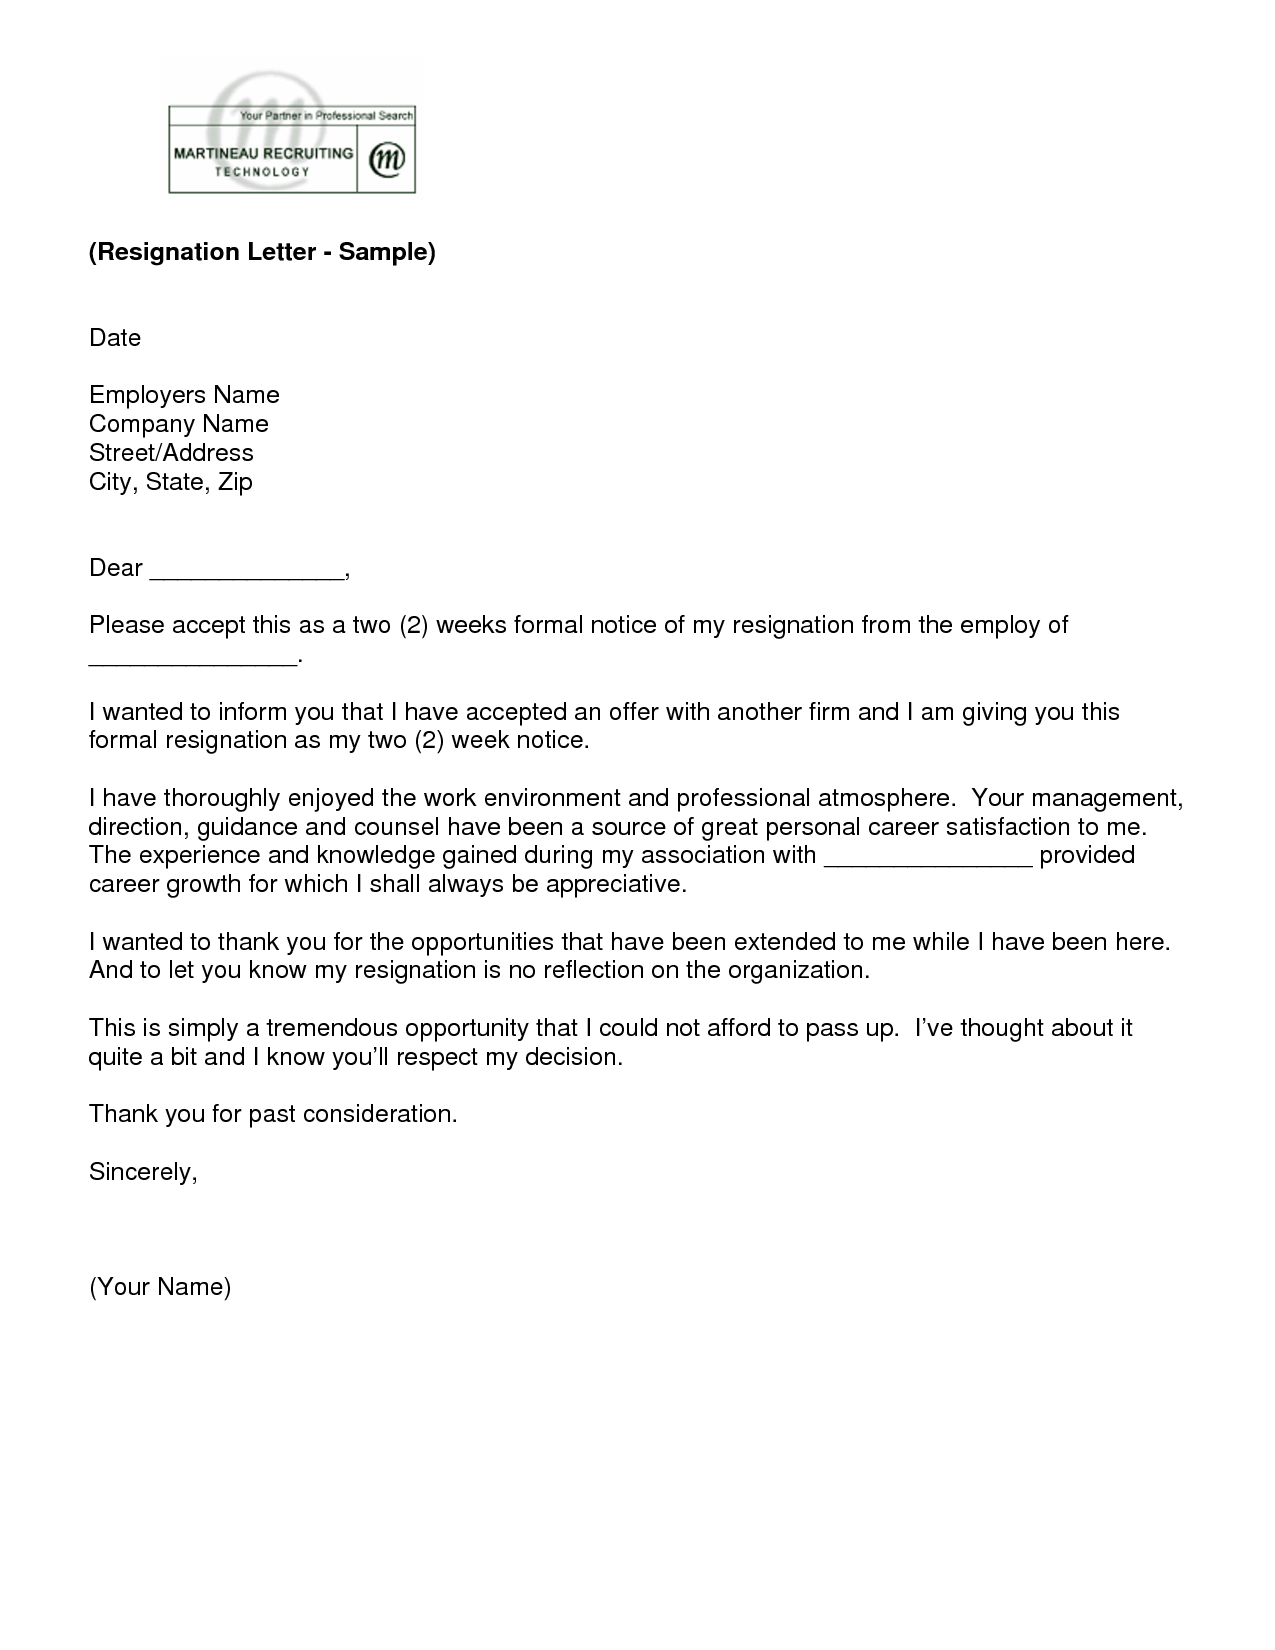 High Quality Letter Of Resignation 2 Weeks Notice Template Regarding Letter Of Resignation 2 Weeks Notice